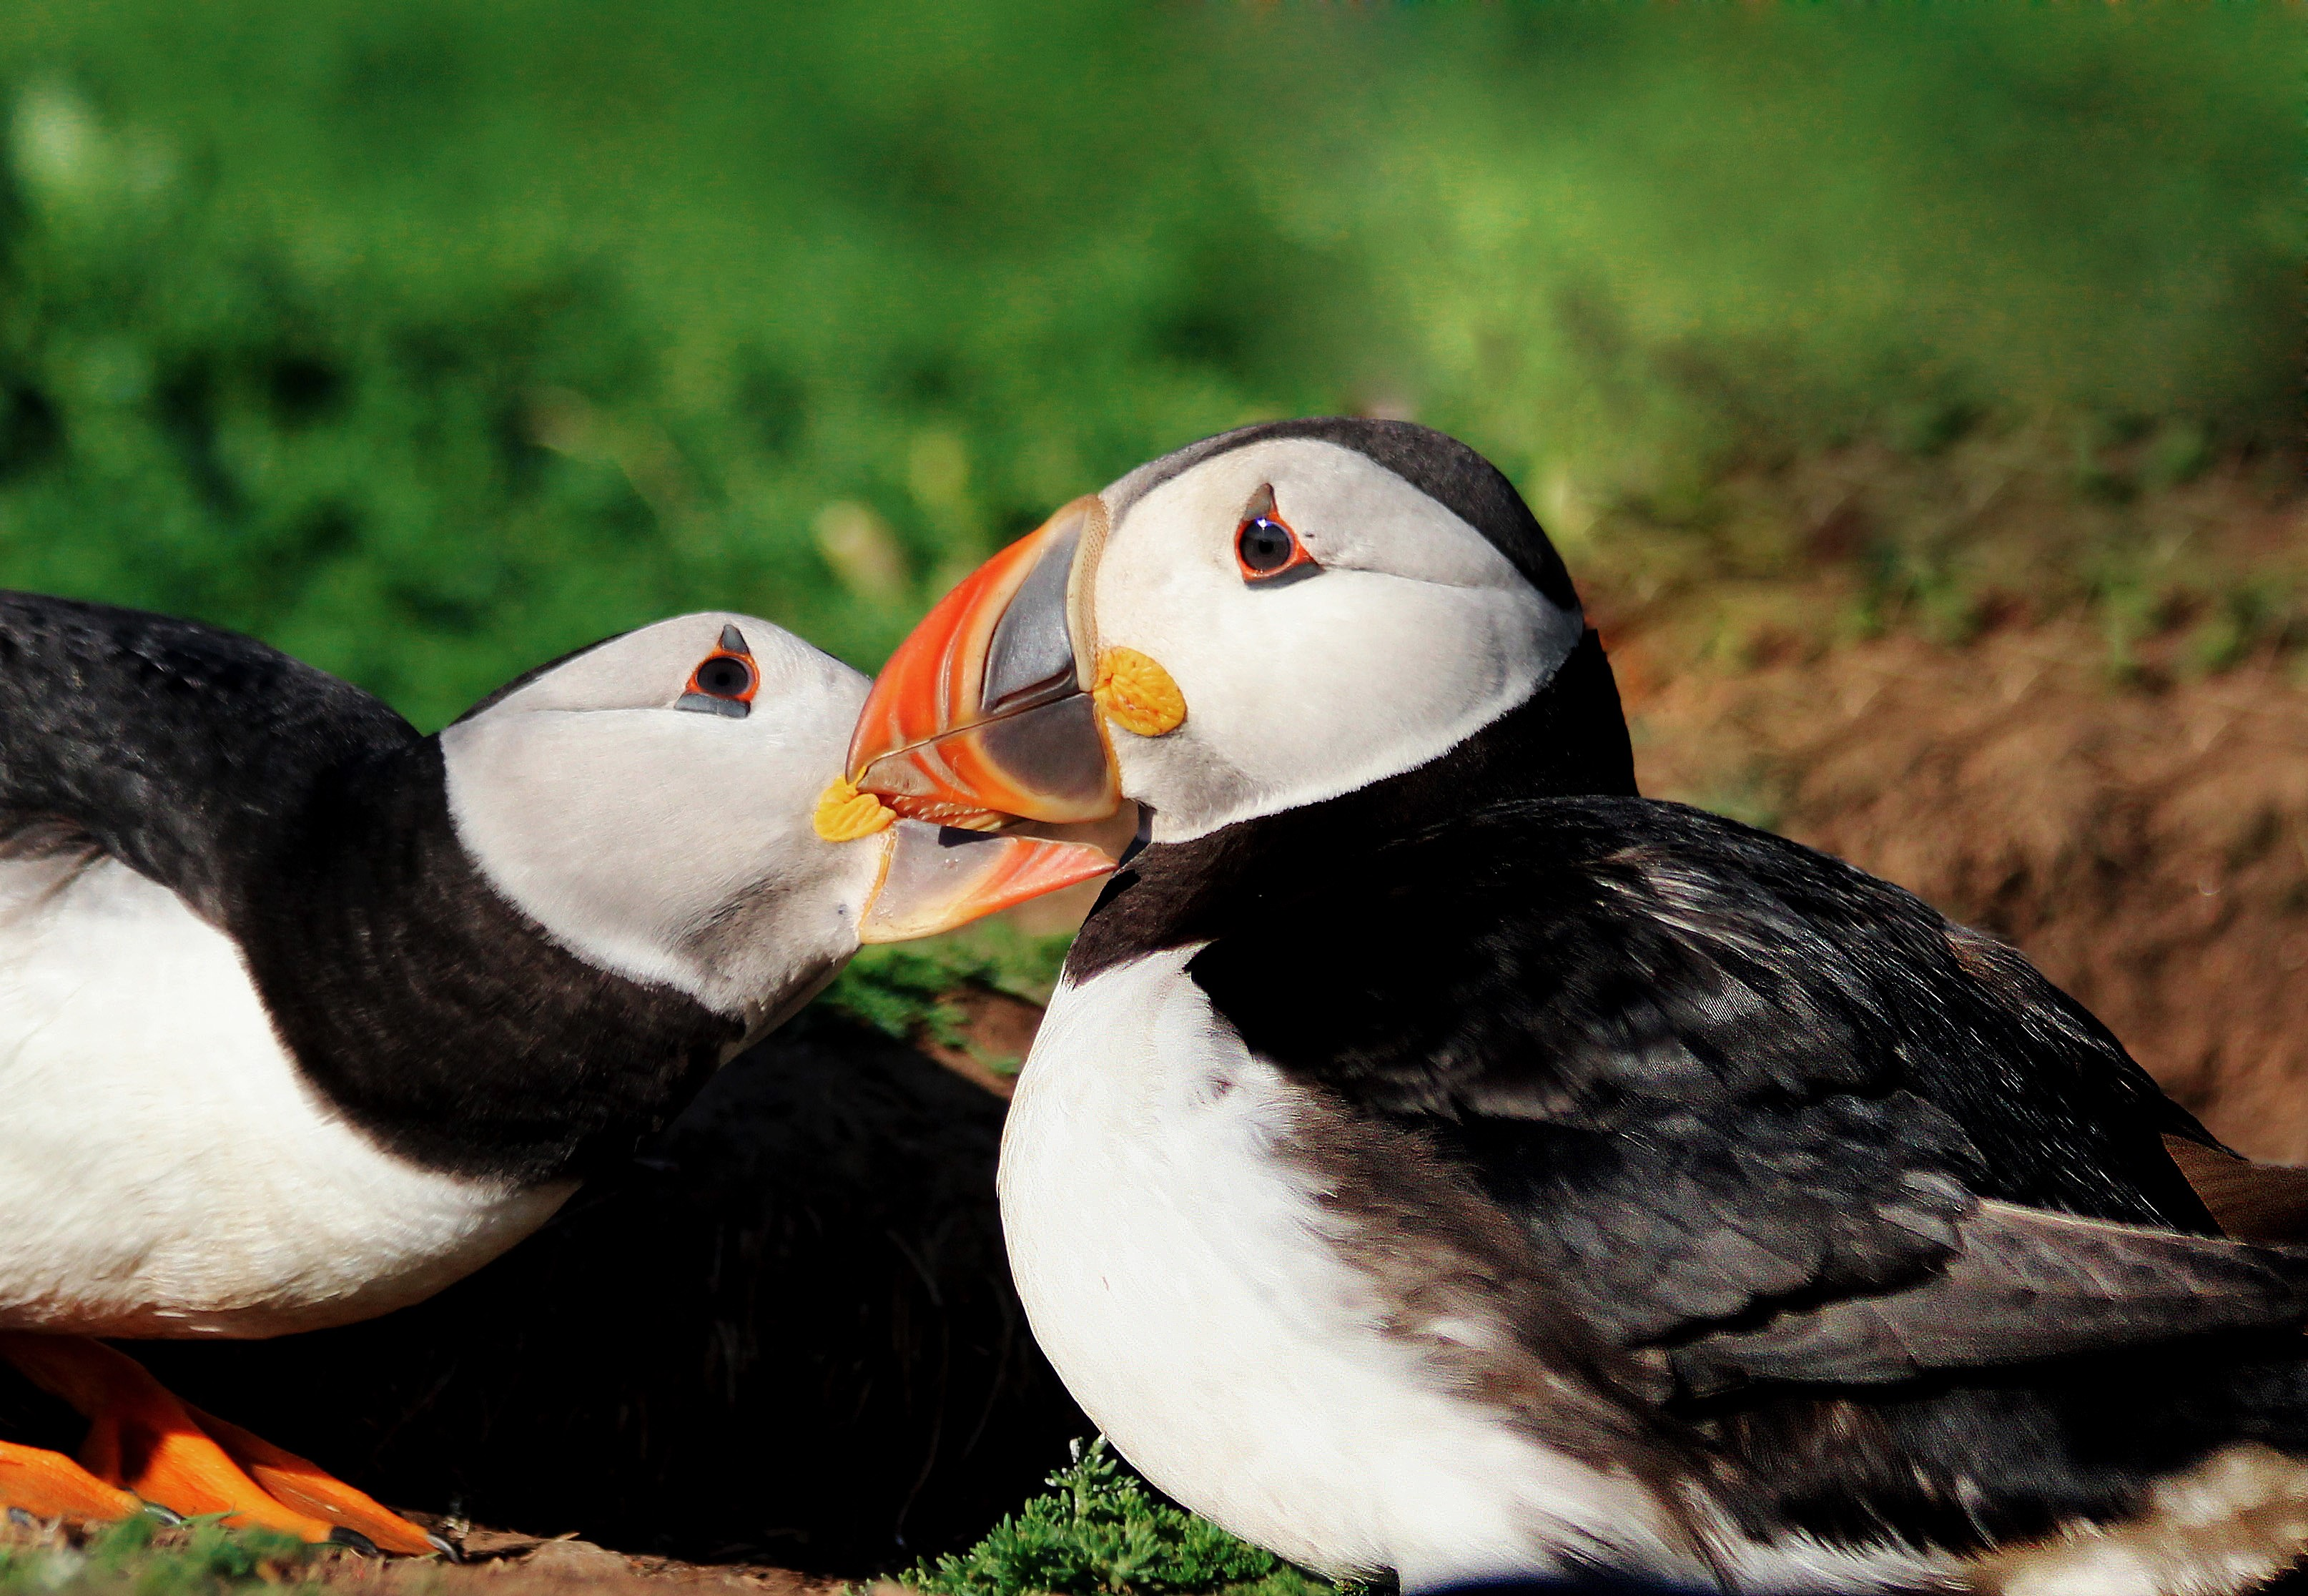 puffins that stay close to their partner during migration have